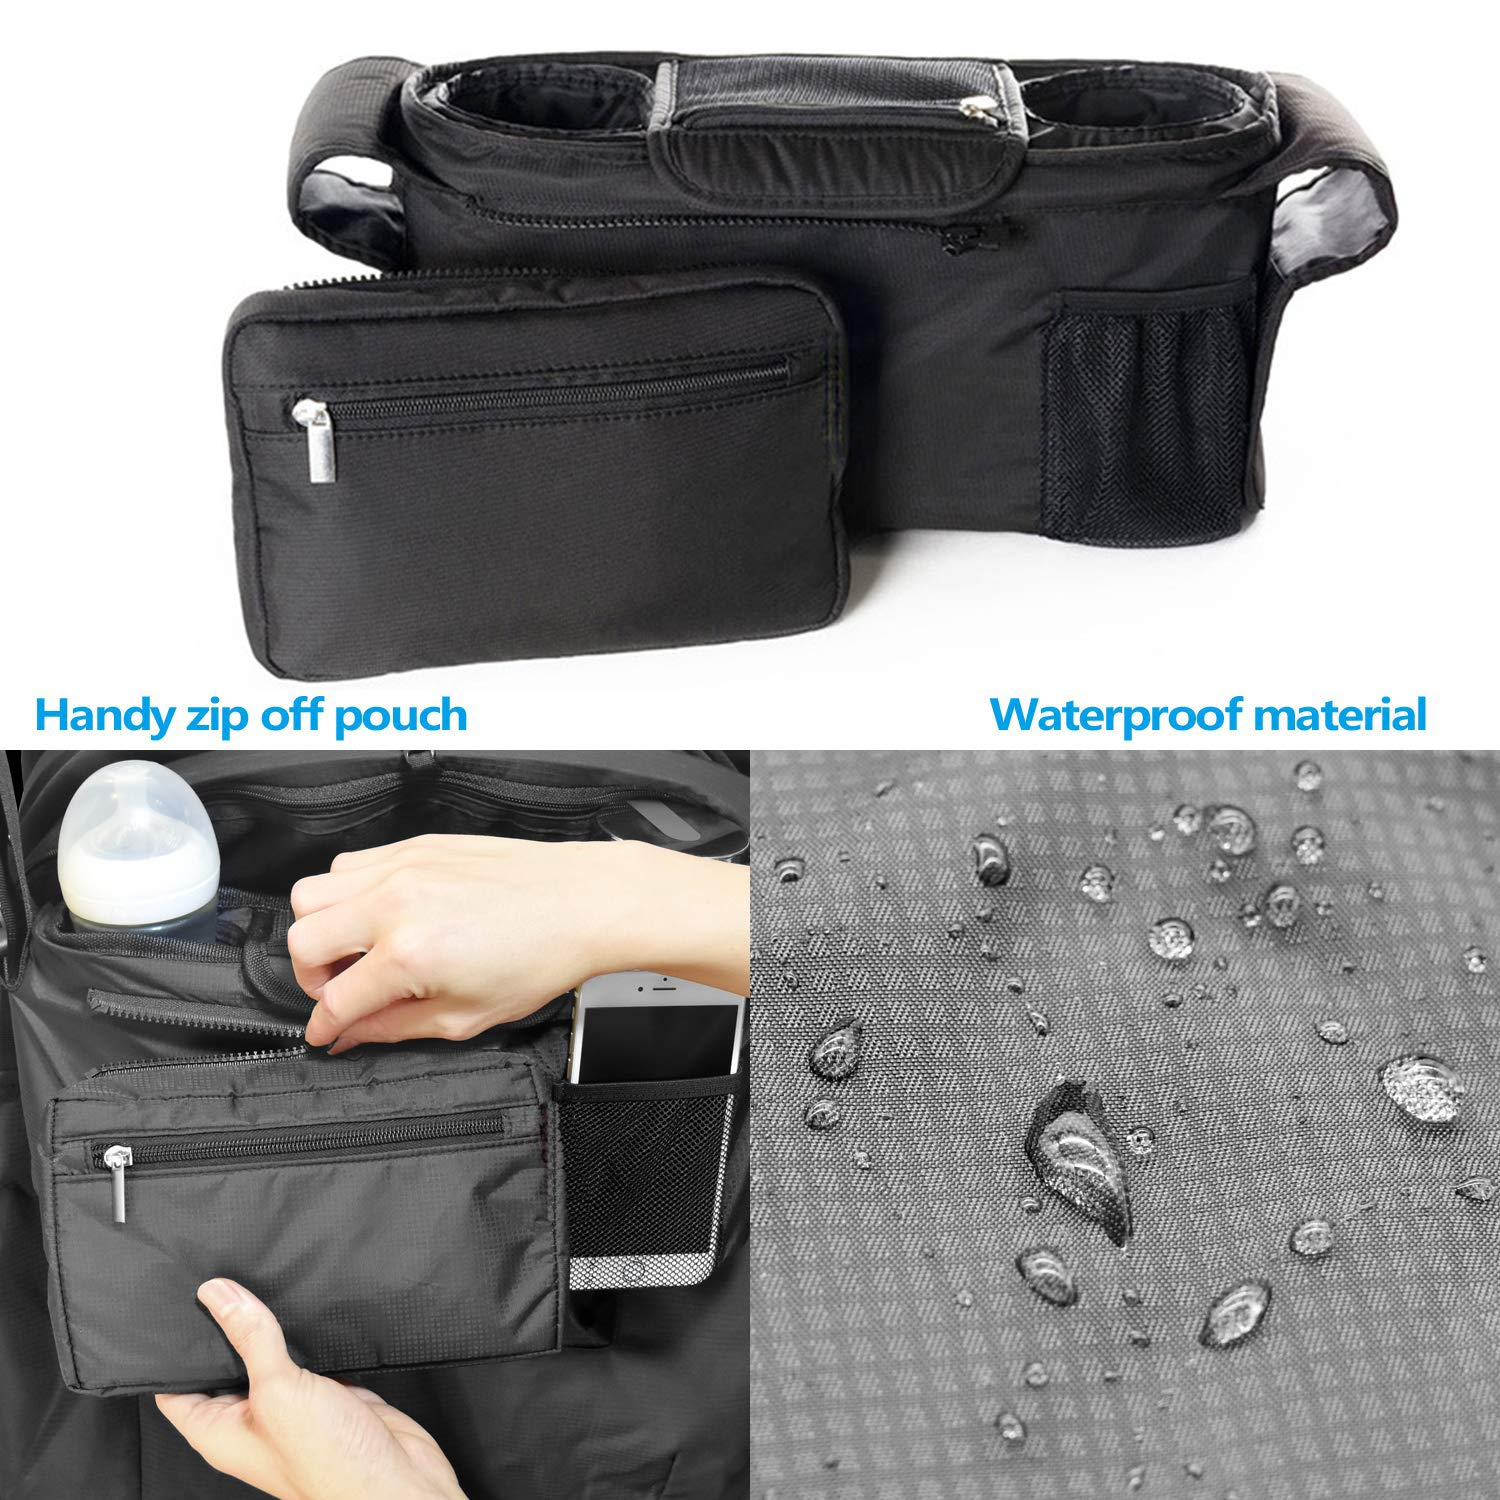 Solayman/'s Baby Stroller Organizer with Deep Insulated Cup Holders Extra Storage Fits All Stroller Model Non Slip Baby Shower Gift Easy Installation Universal Stroller Organizer Bag for Smart Mom